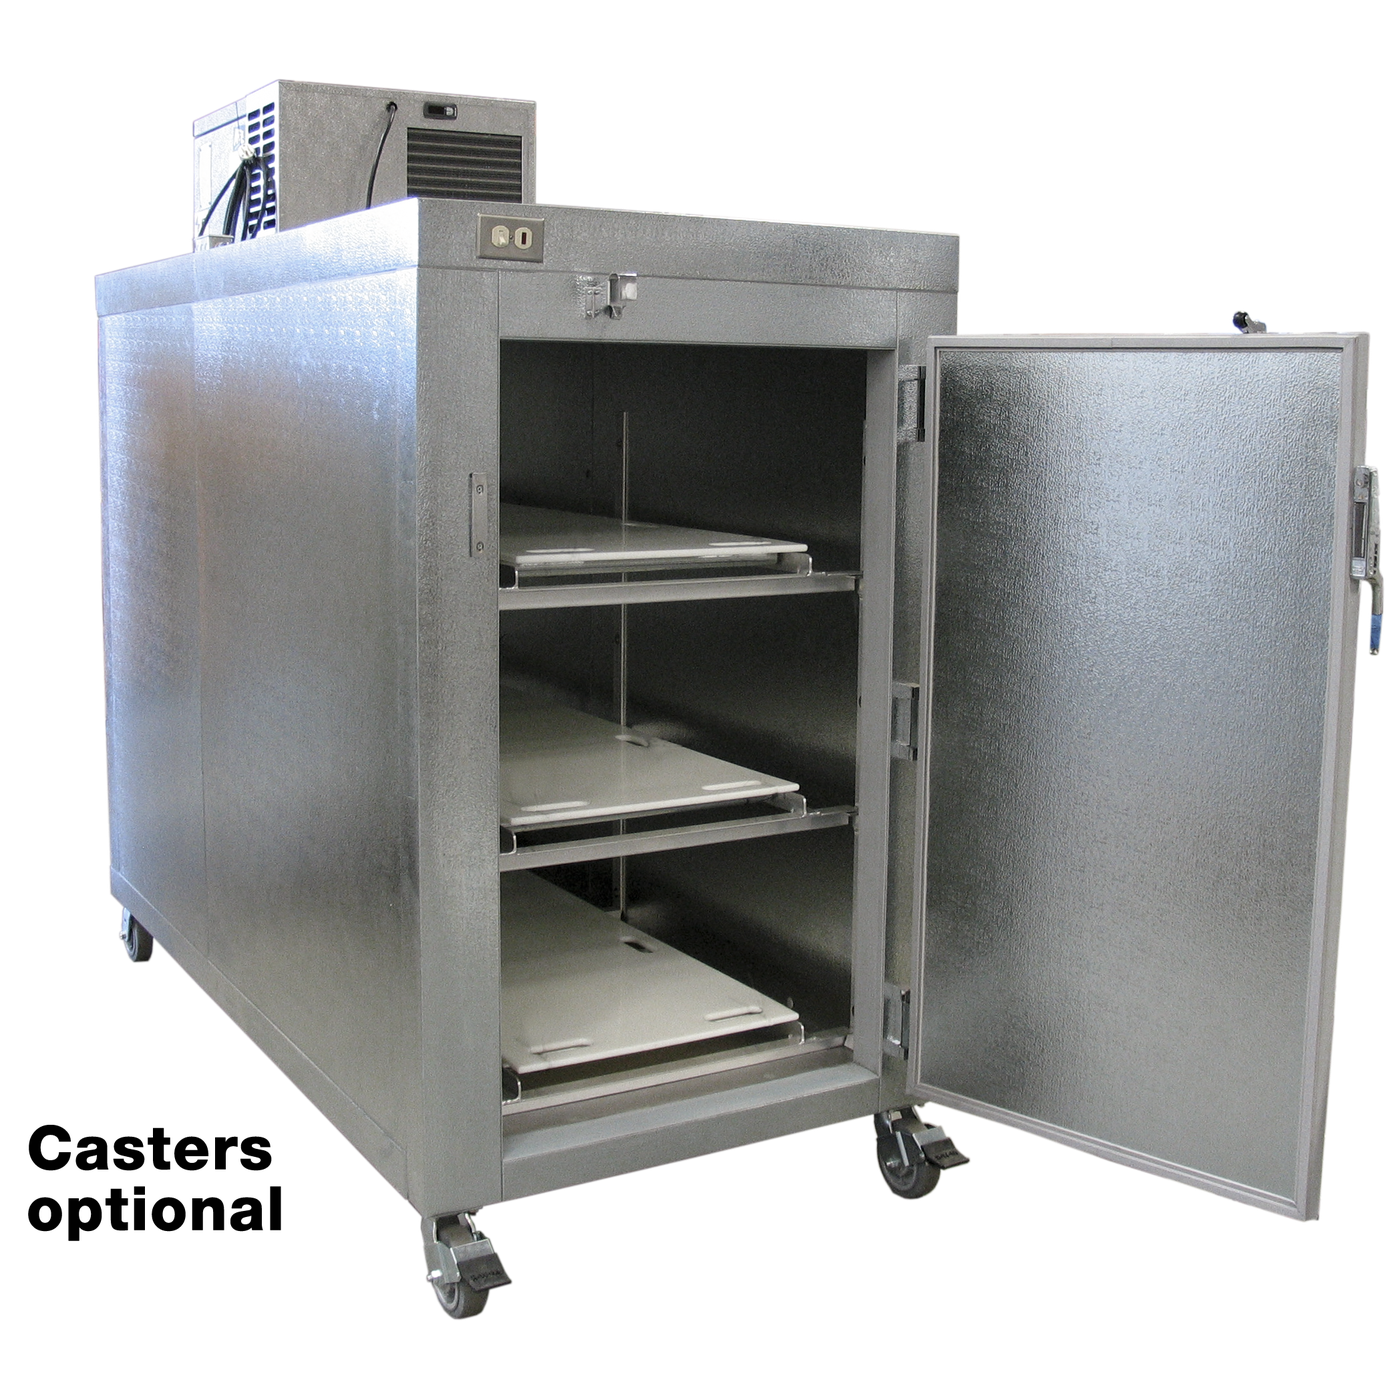 "Three Body Refrigerator - 24"" or 30"" in. doors-Refrigeration-Mortech Manufacturing Company Inc. Quality Stainless Steel Autopsy, Morgue, Funeral Home, Necropsy, Veterinary / Anatomy, Dissection Equipment and Accessories"